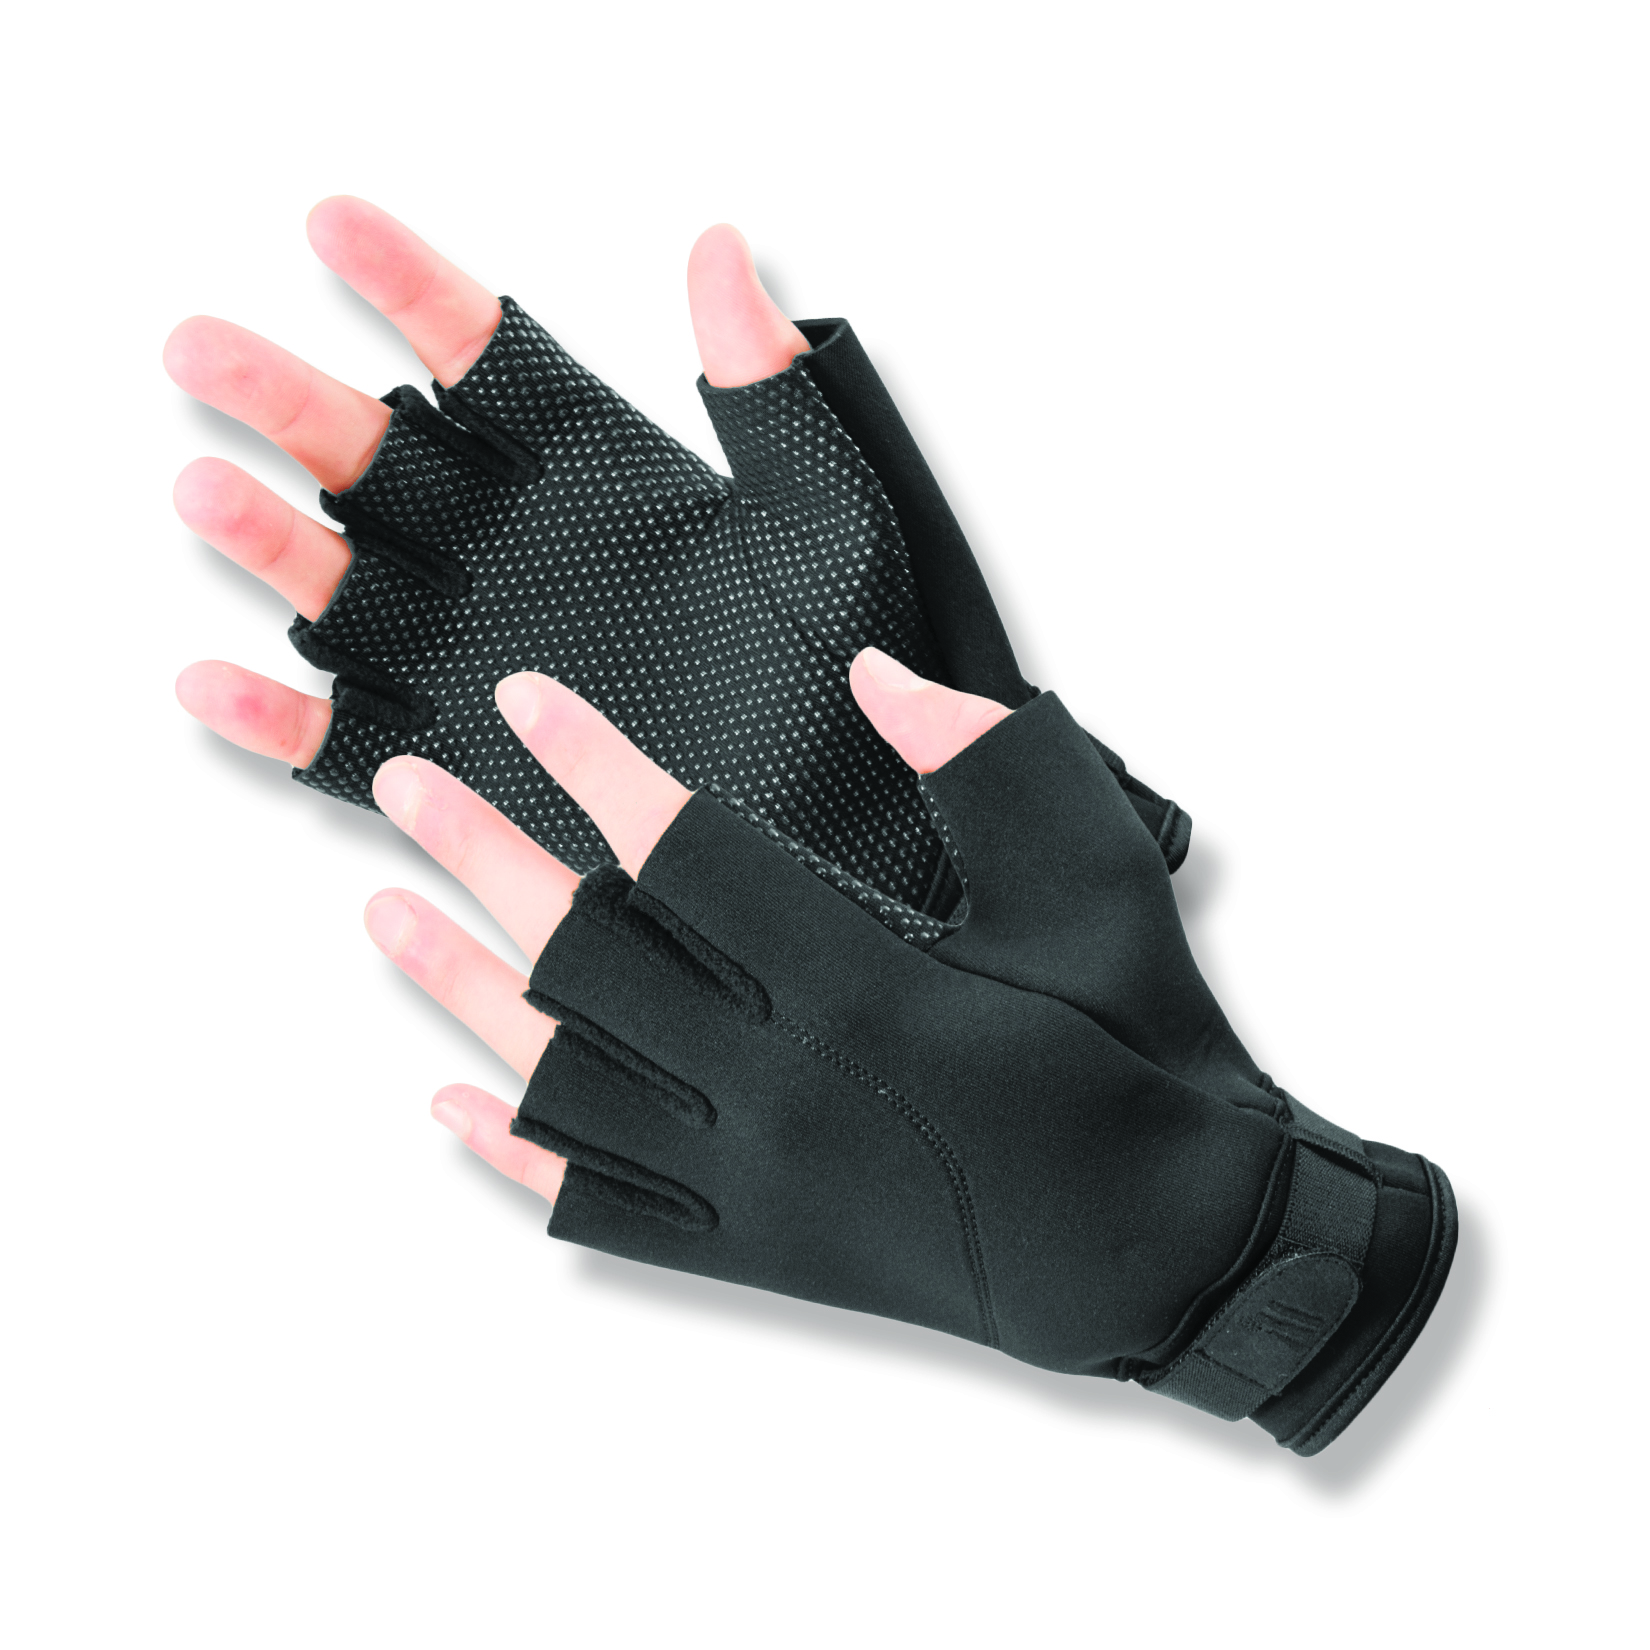 Expert Fin™ Cold Weather Open Finger Neoprene Gloves with gripper dots on the palms